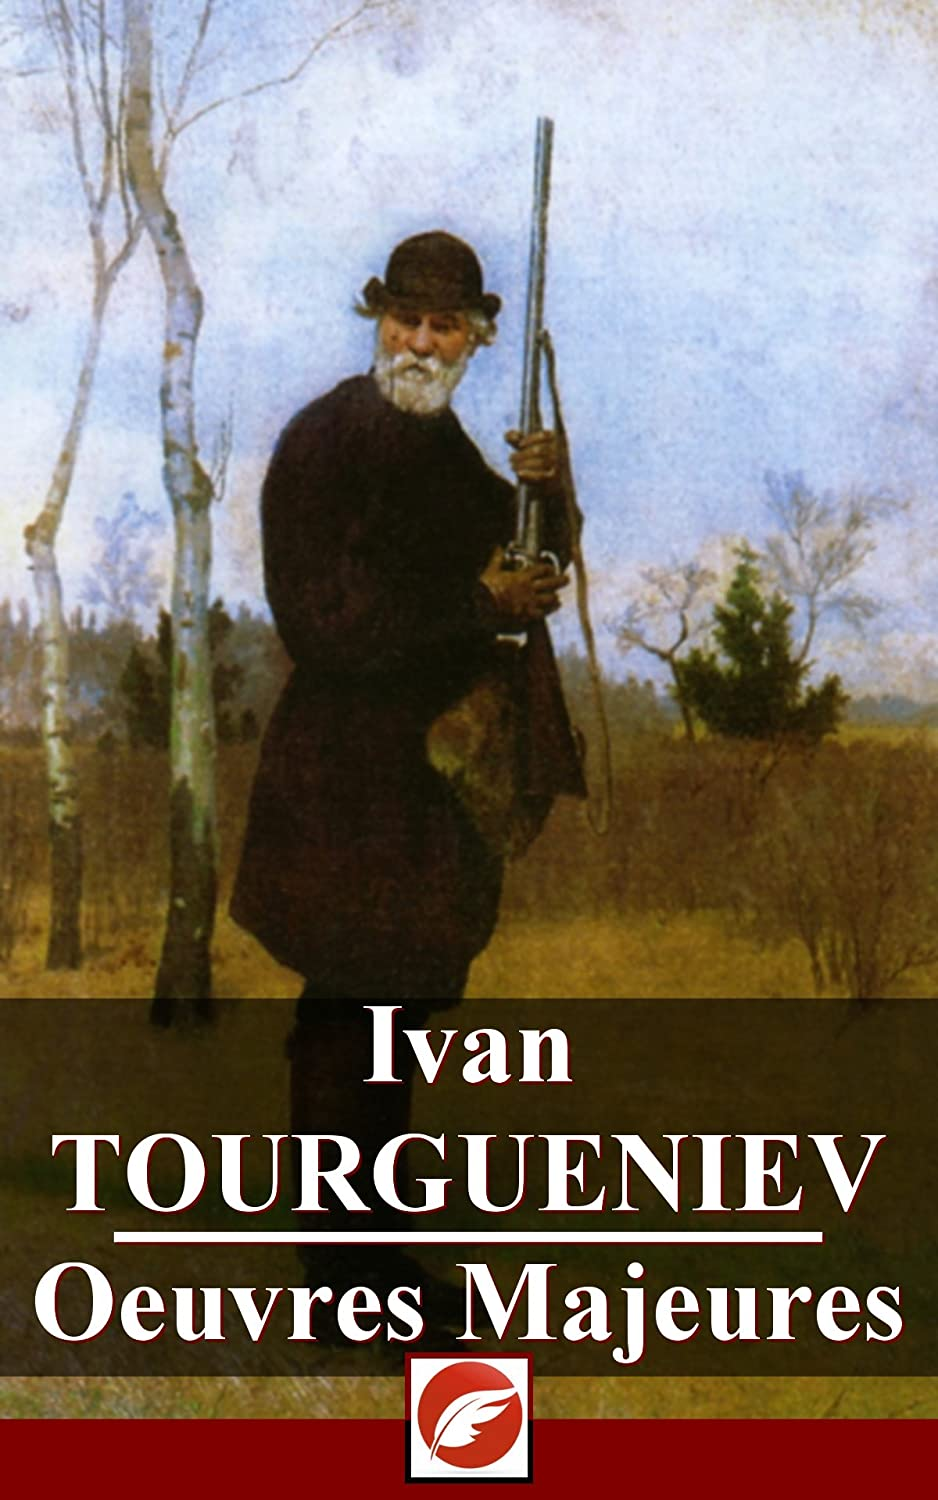 Ivan TOURGUENIEV - Oeuvres Majeures